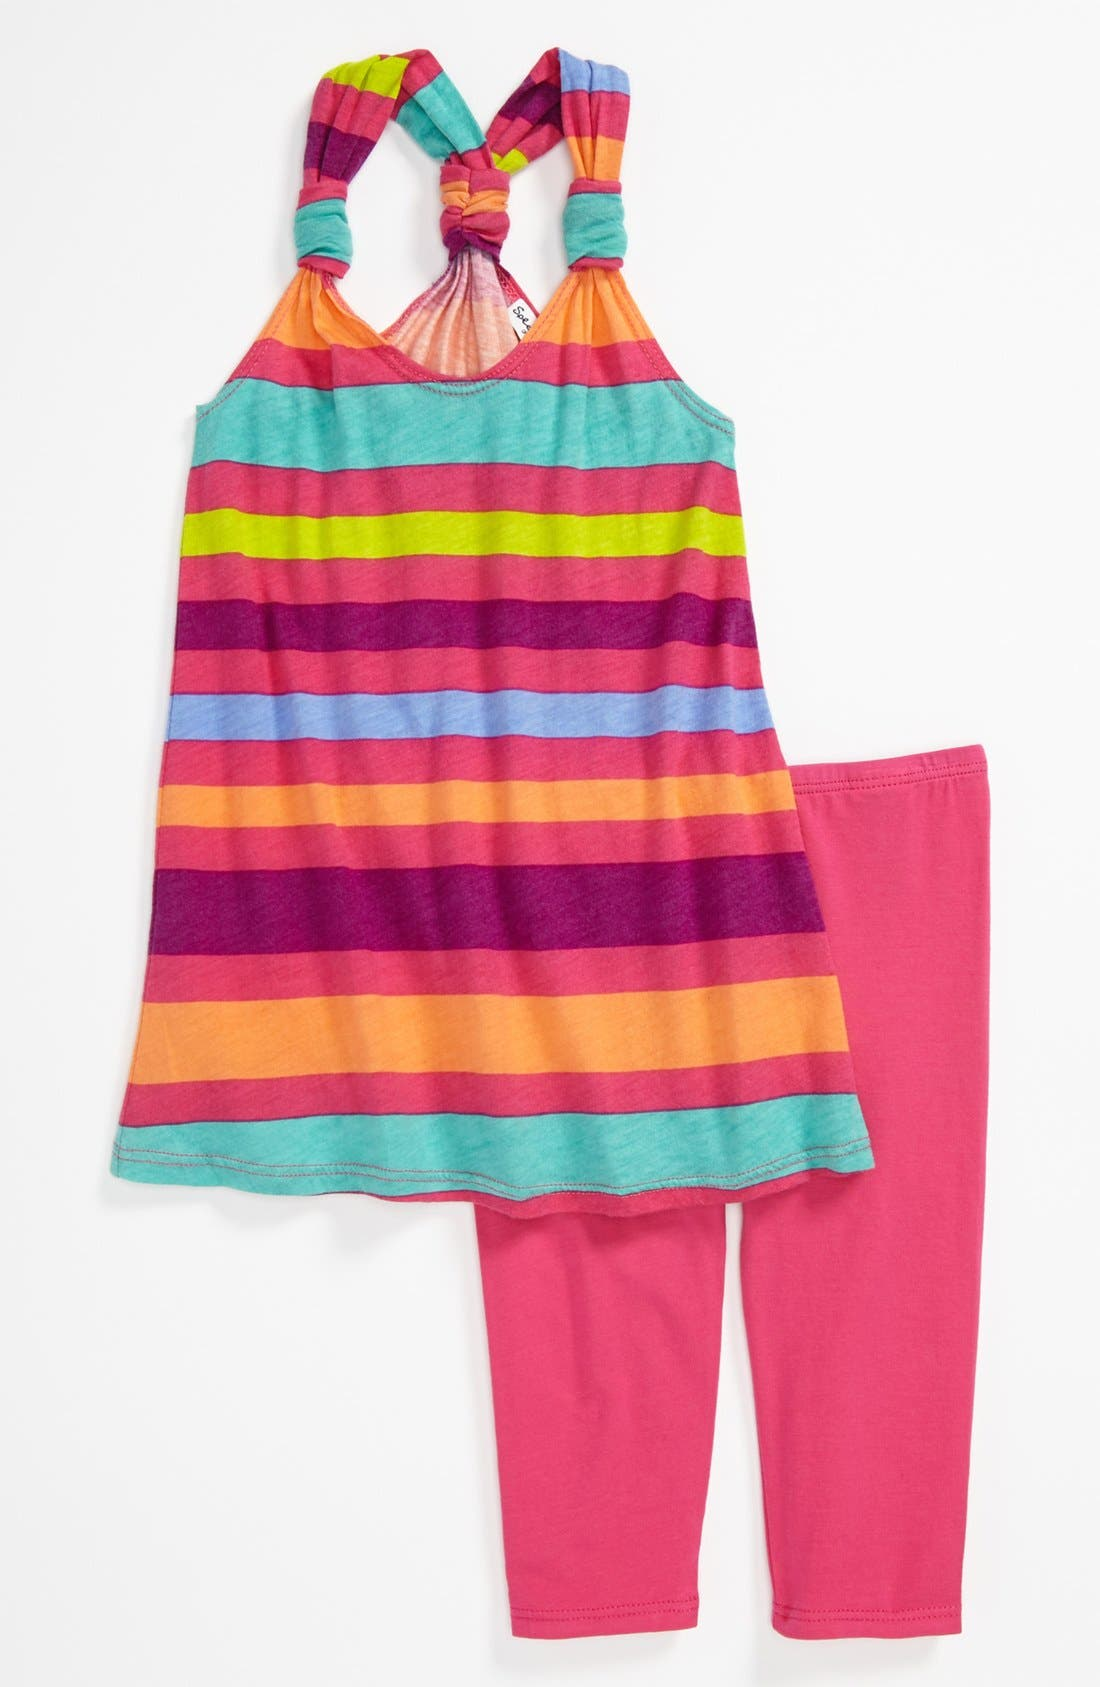 Main Image - Splendid 'Carnival Stripe' Tank Top & Leggings (Toddler)